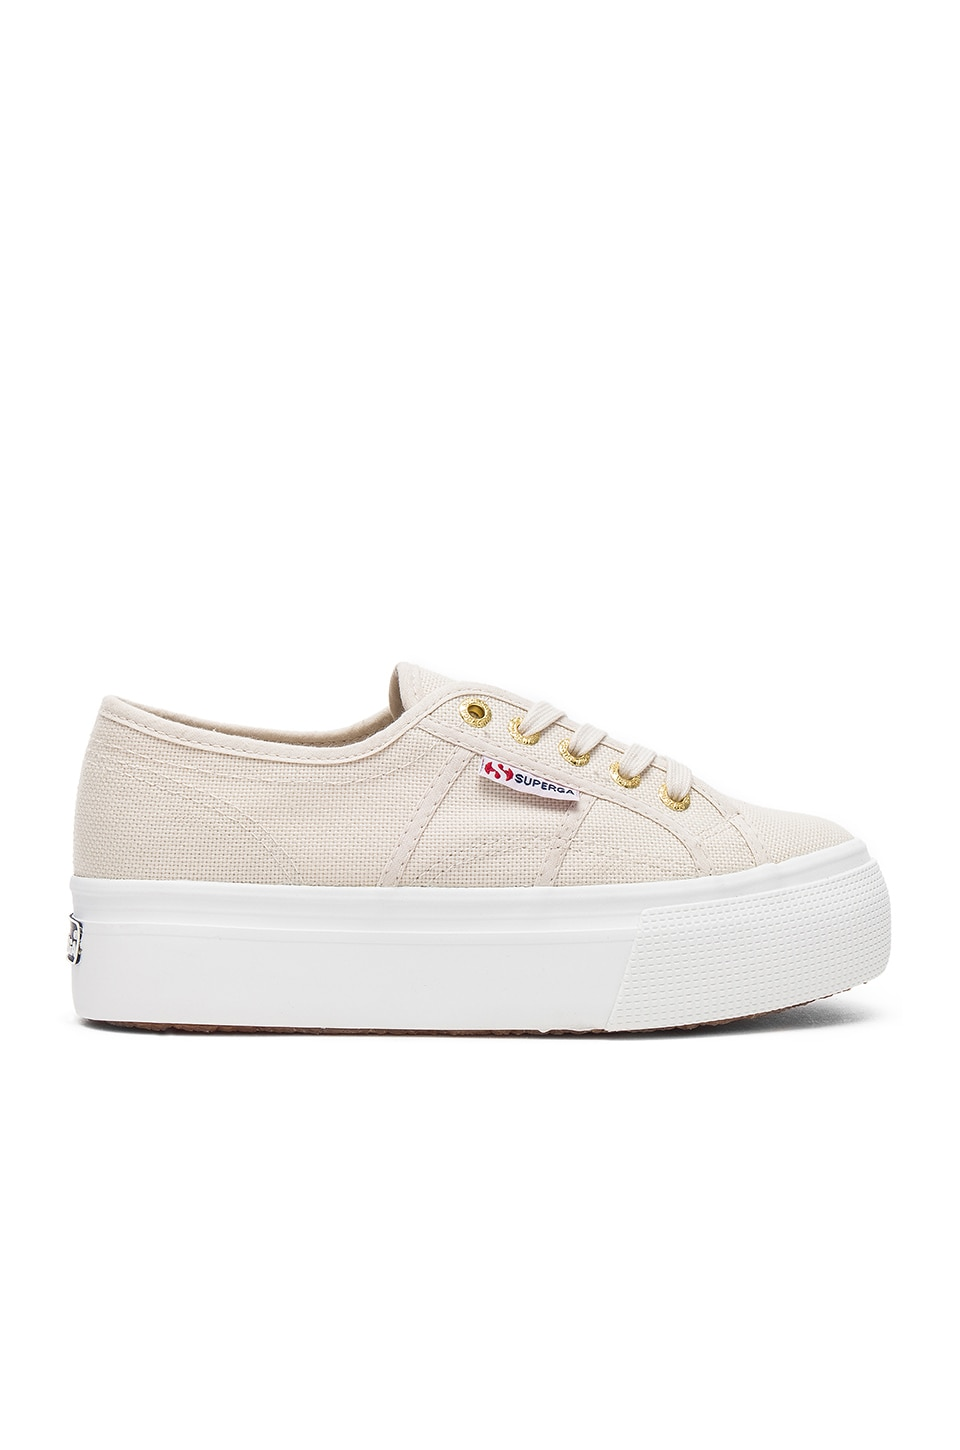 Superga 2790 Sneaker in Cafe Noir